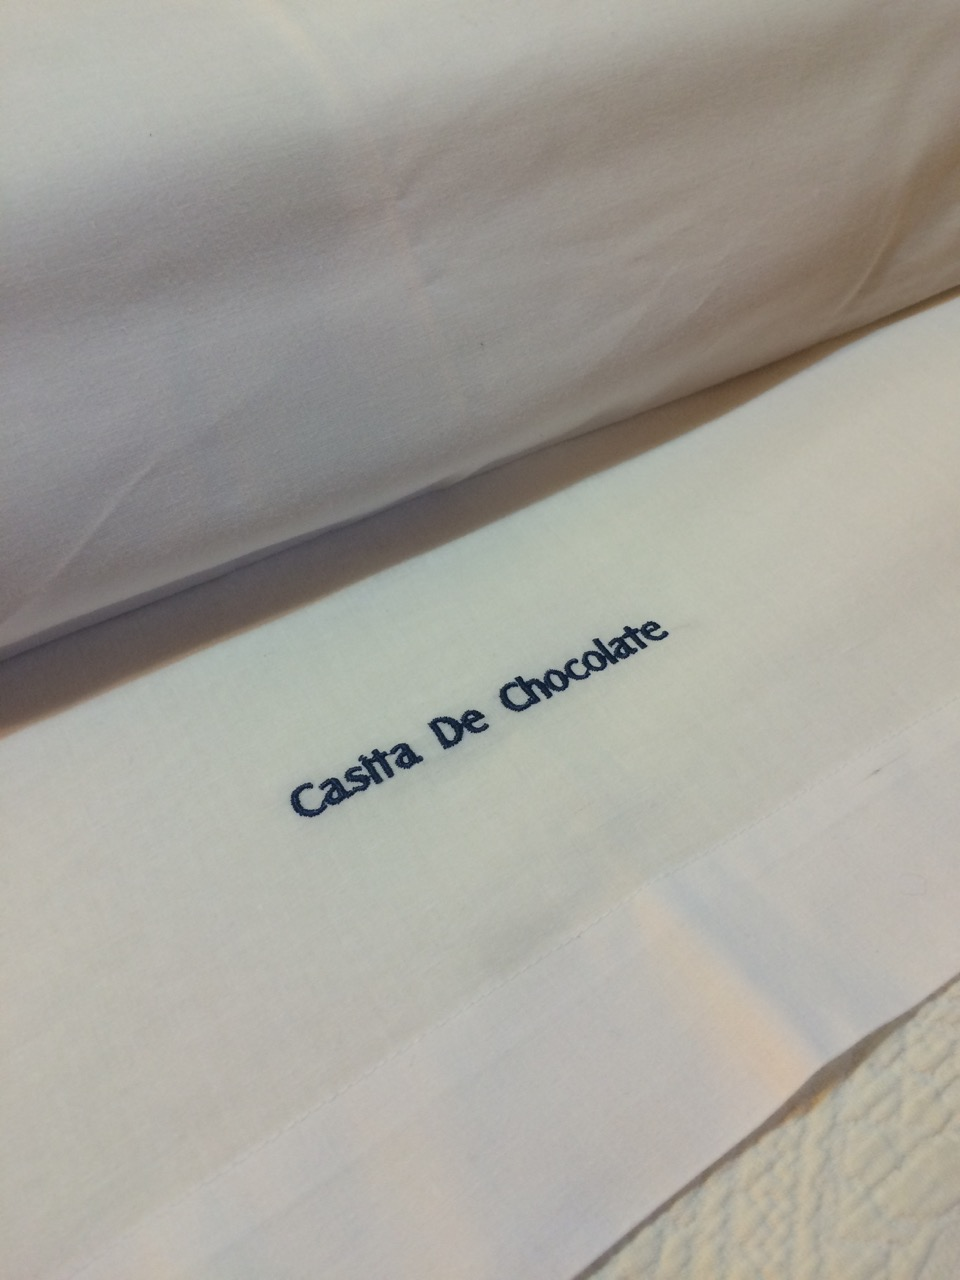 casitachocolate